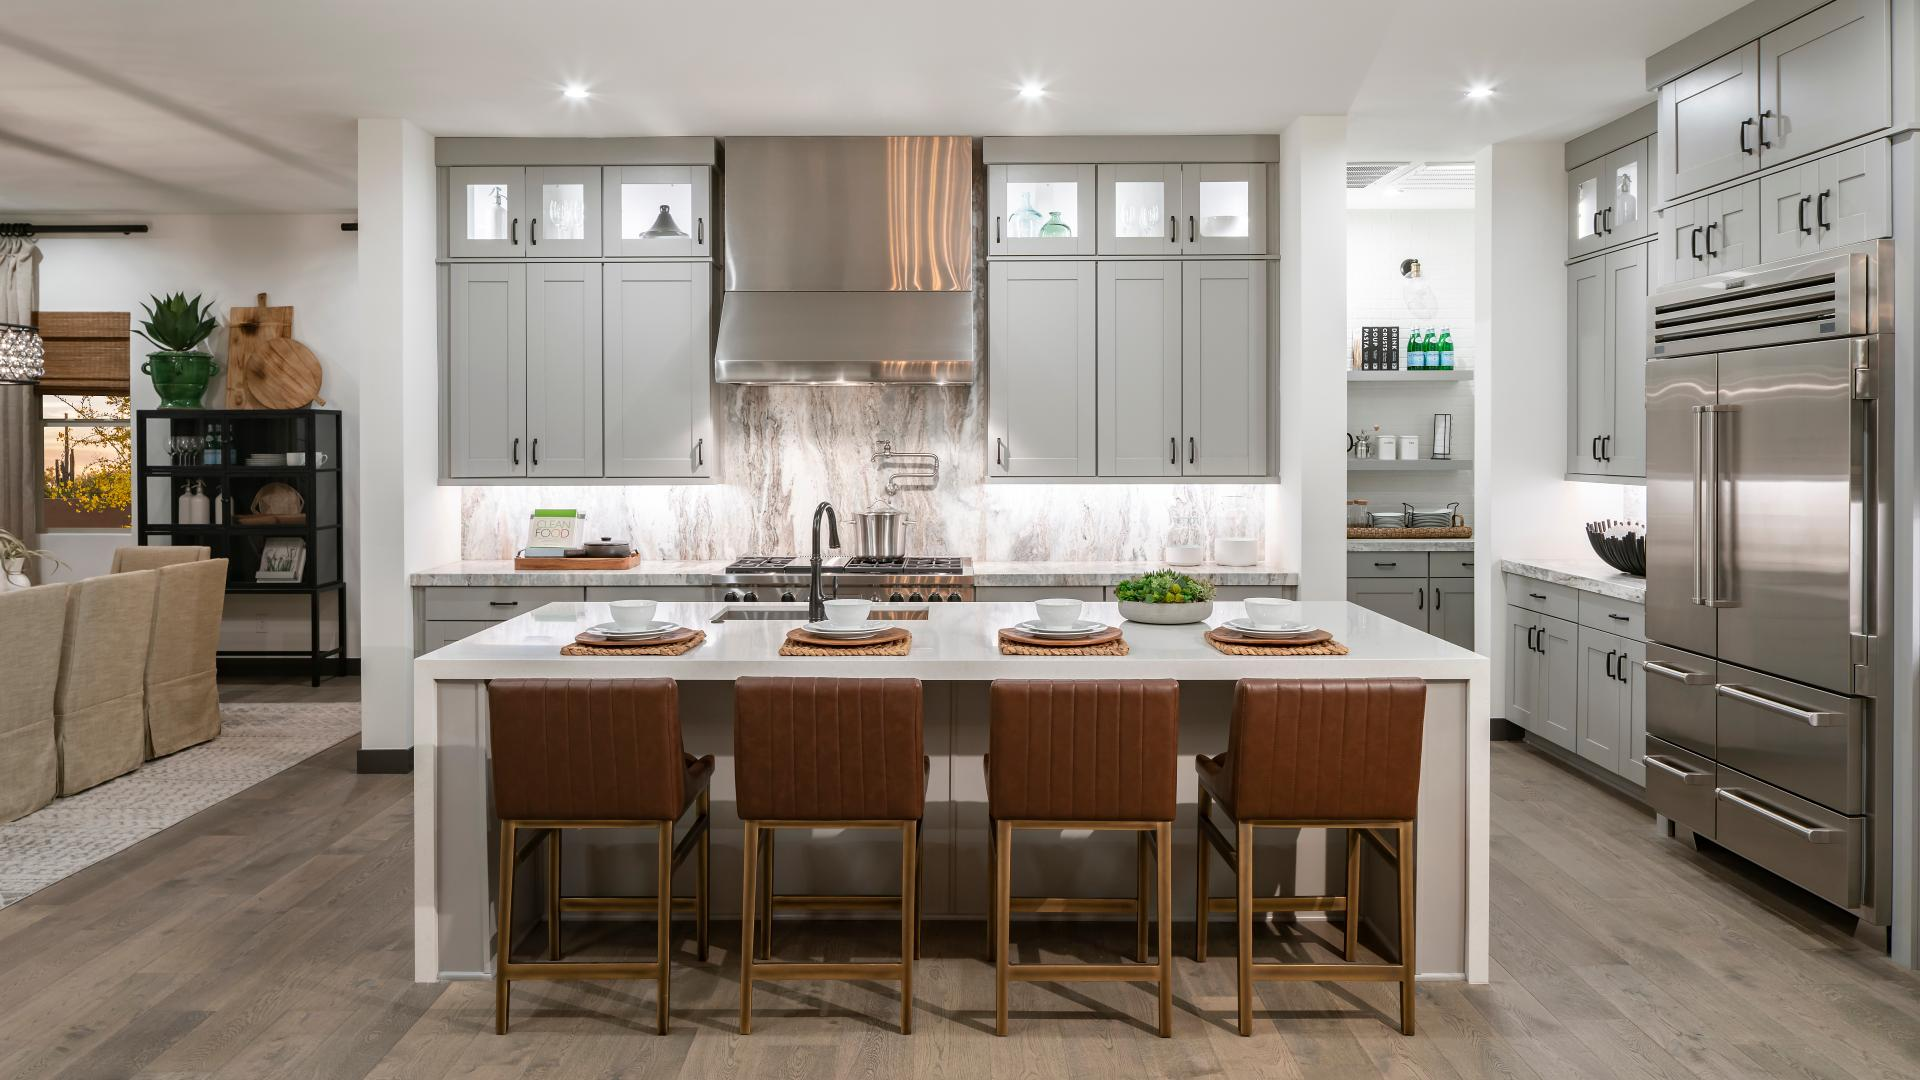 Hastings beautiful kitchen with large center island